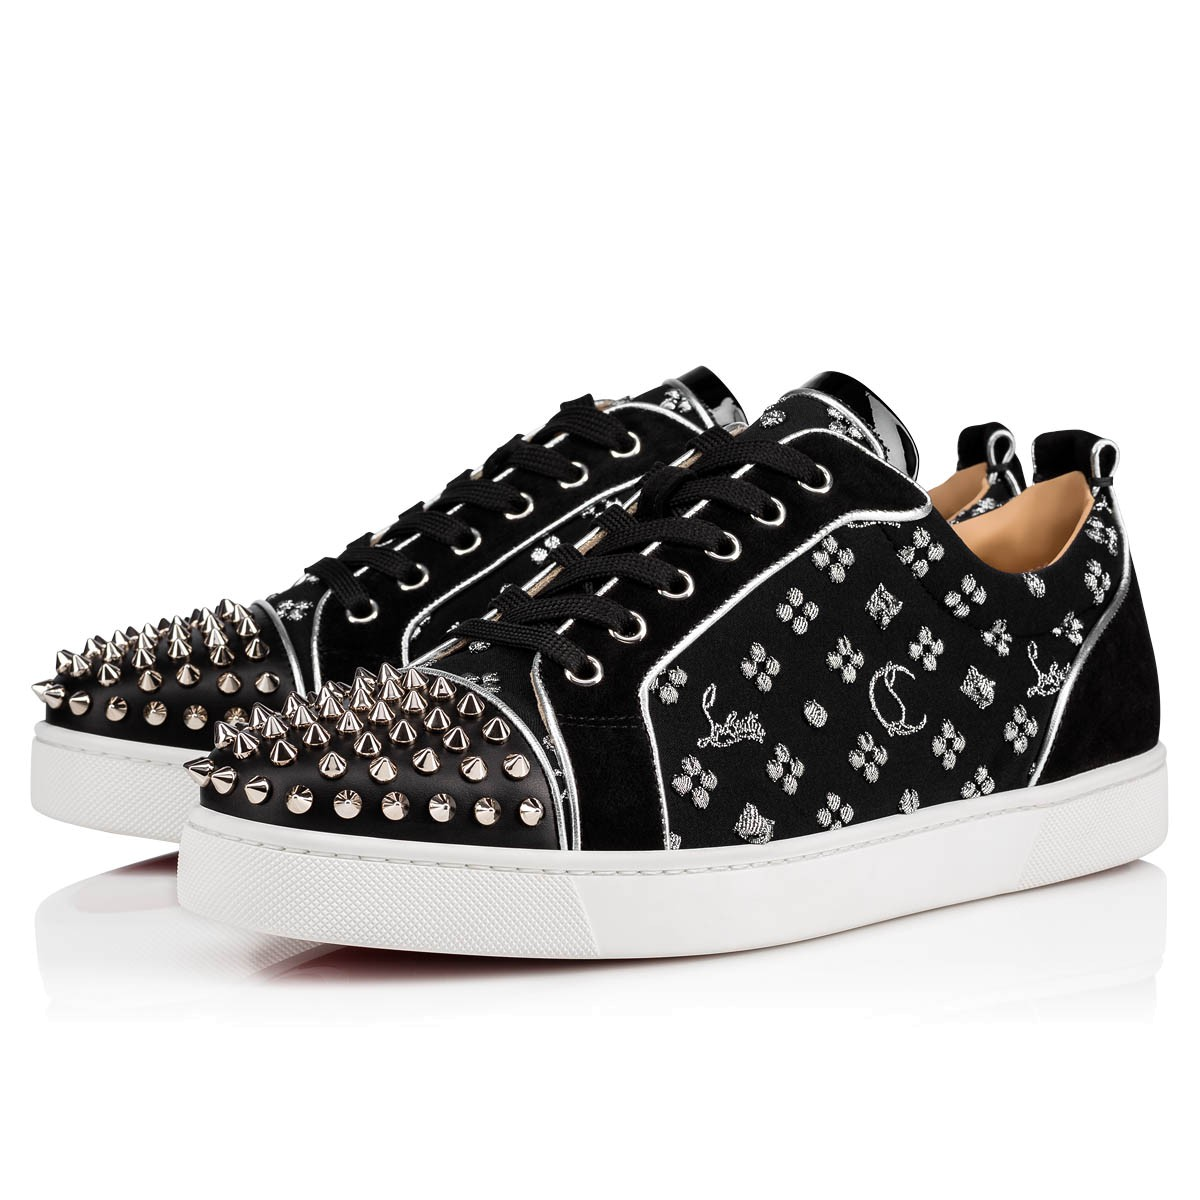 8d7f093f44c Louis Junior Spikes Orlato Men's Flat Black/Silver Jacquard Loubi in the  Sky - Men Shoes - Christian Louboutin